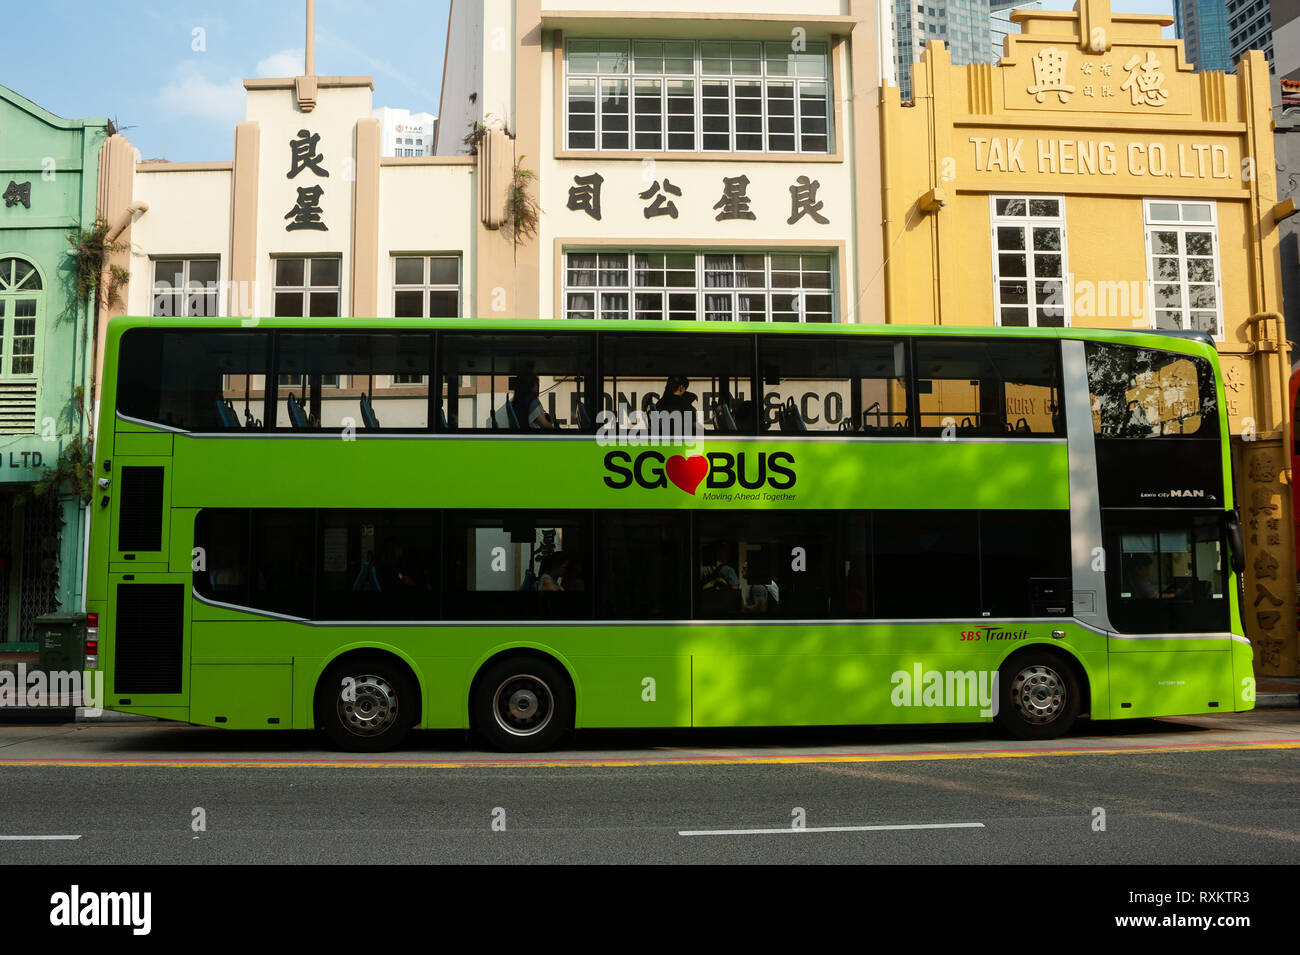 08.03.2019, Singapore, Republic of Singapore, Asia - A city bus is stopping at a bus stop along South Bridge Road in the city centre. - Stock Image